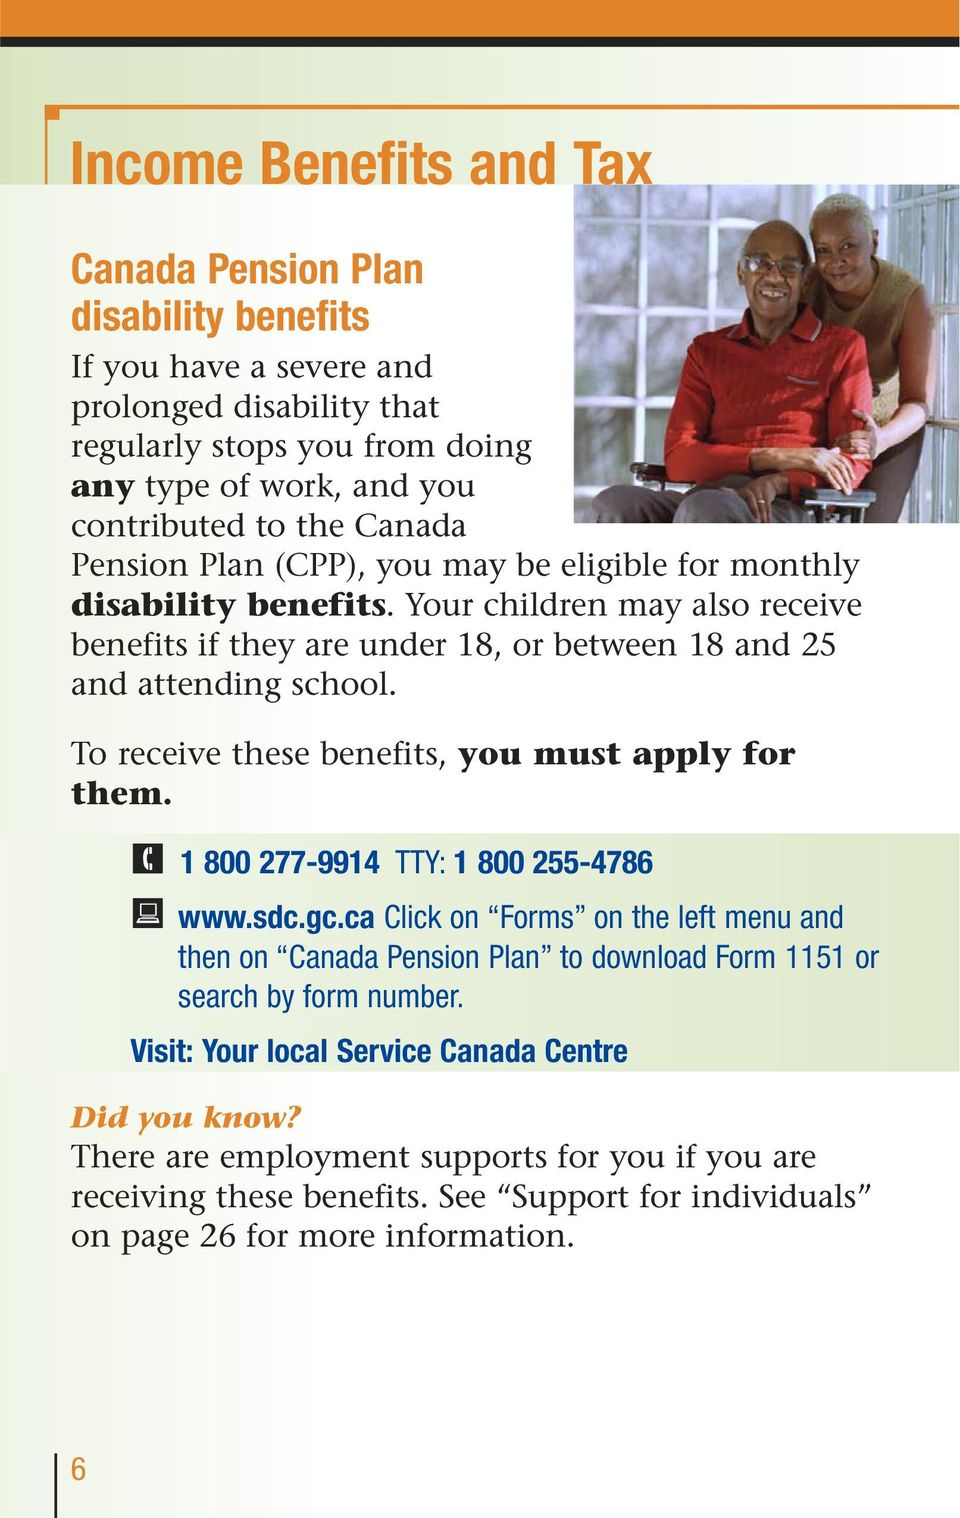 To receive these benefits, you must apply for them. 1 800 277-9914 TTY: 1 800 255-4786 www.sdc.gc.